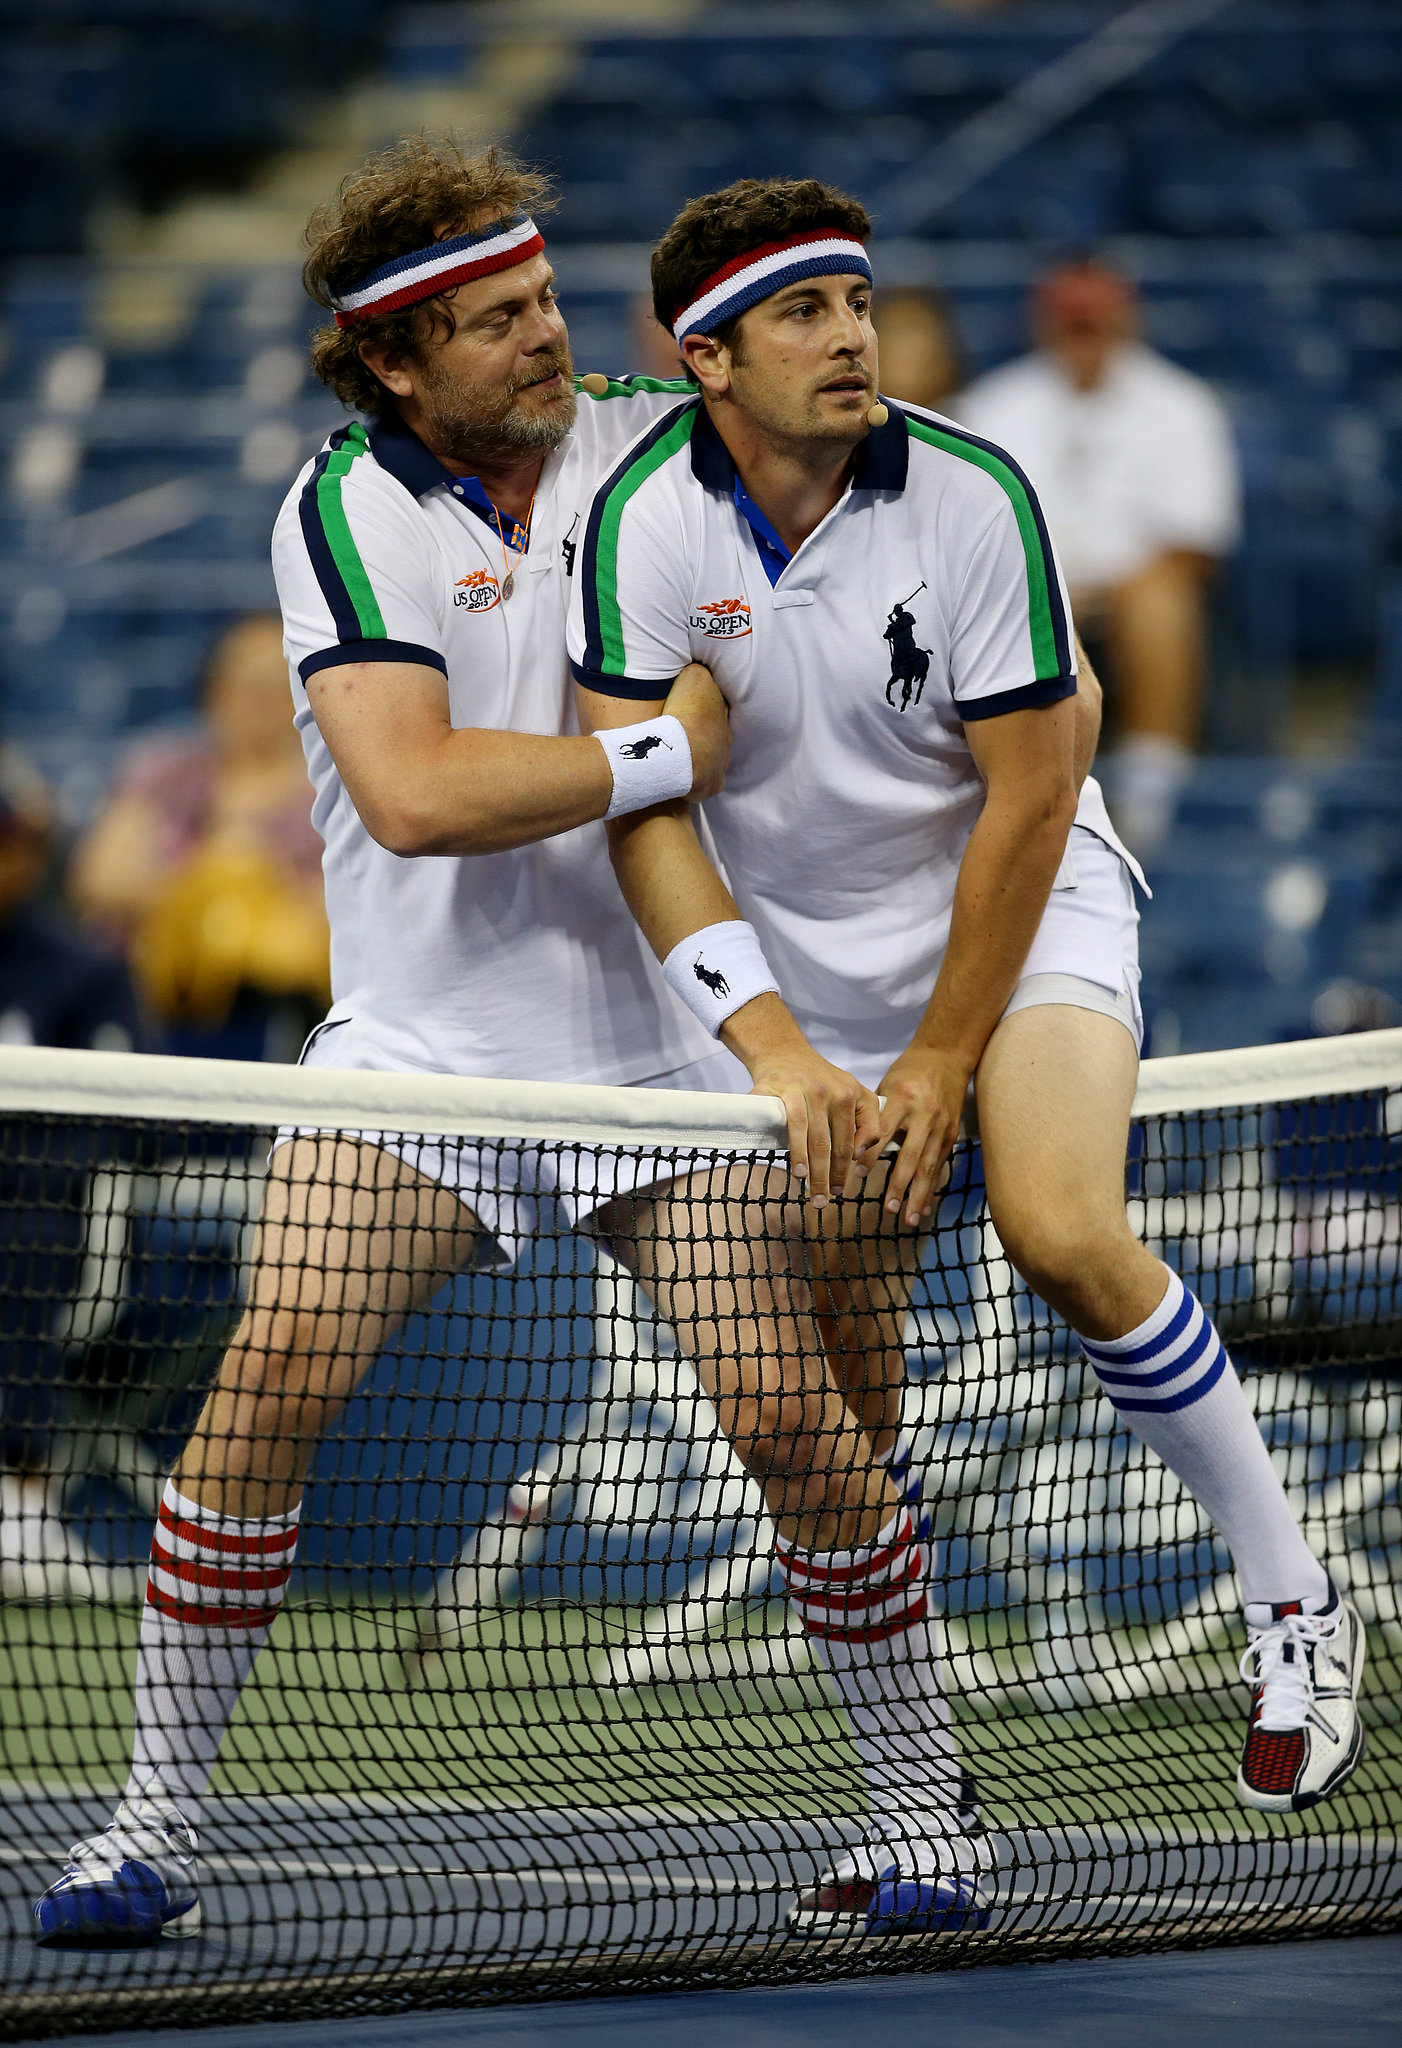 Rainn Wilson and Jason Biggs took the court for fun during a break from the competition.